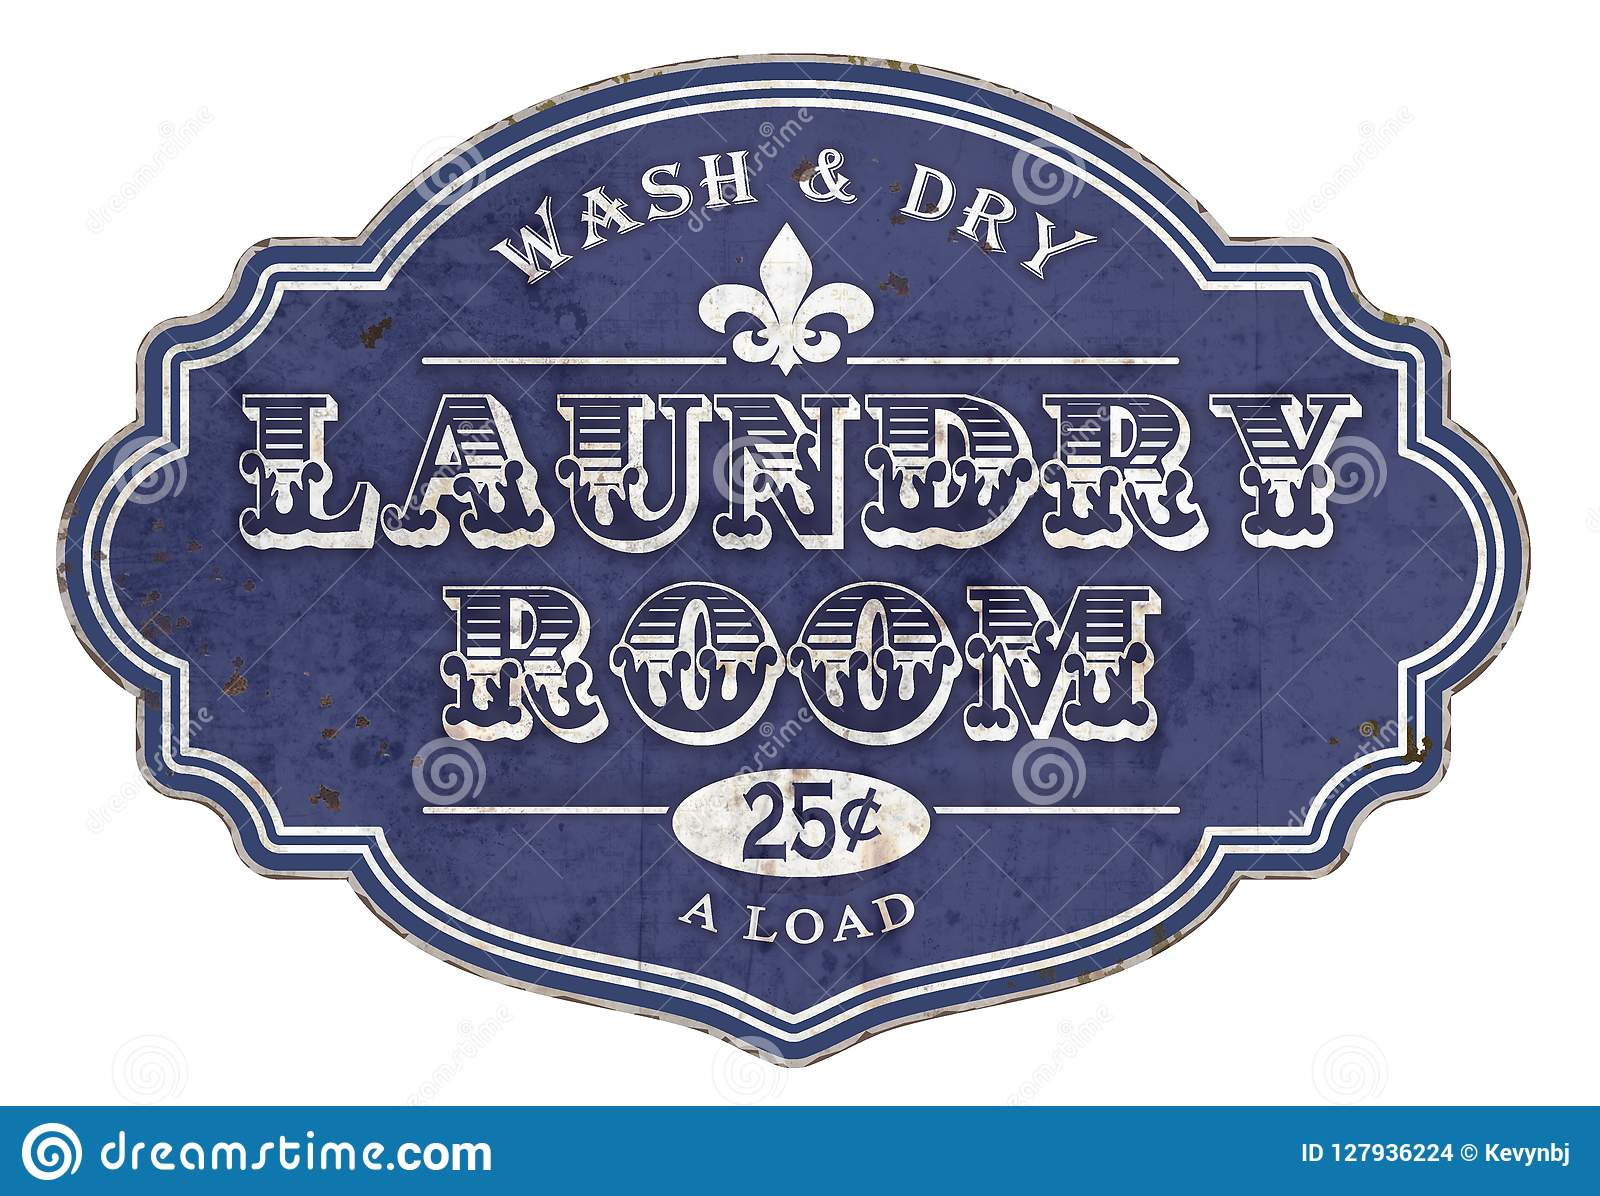 Laundry Room Sign Plaque Vintage